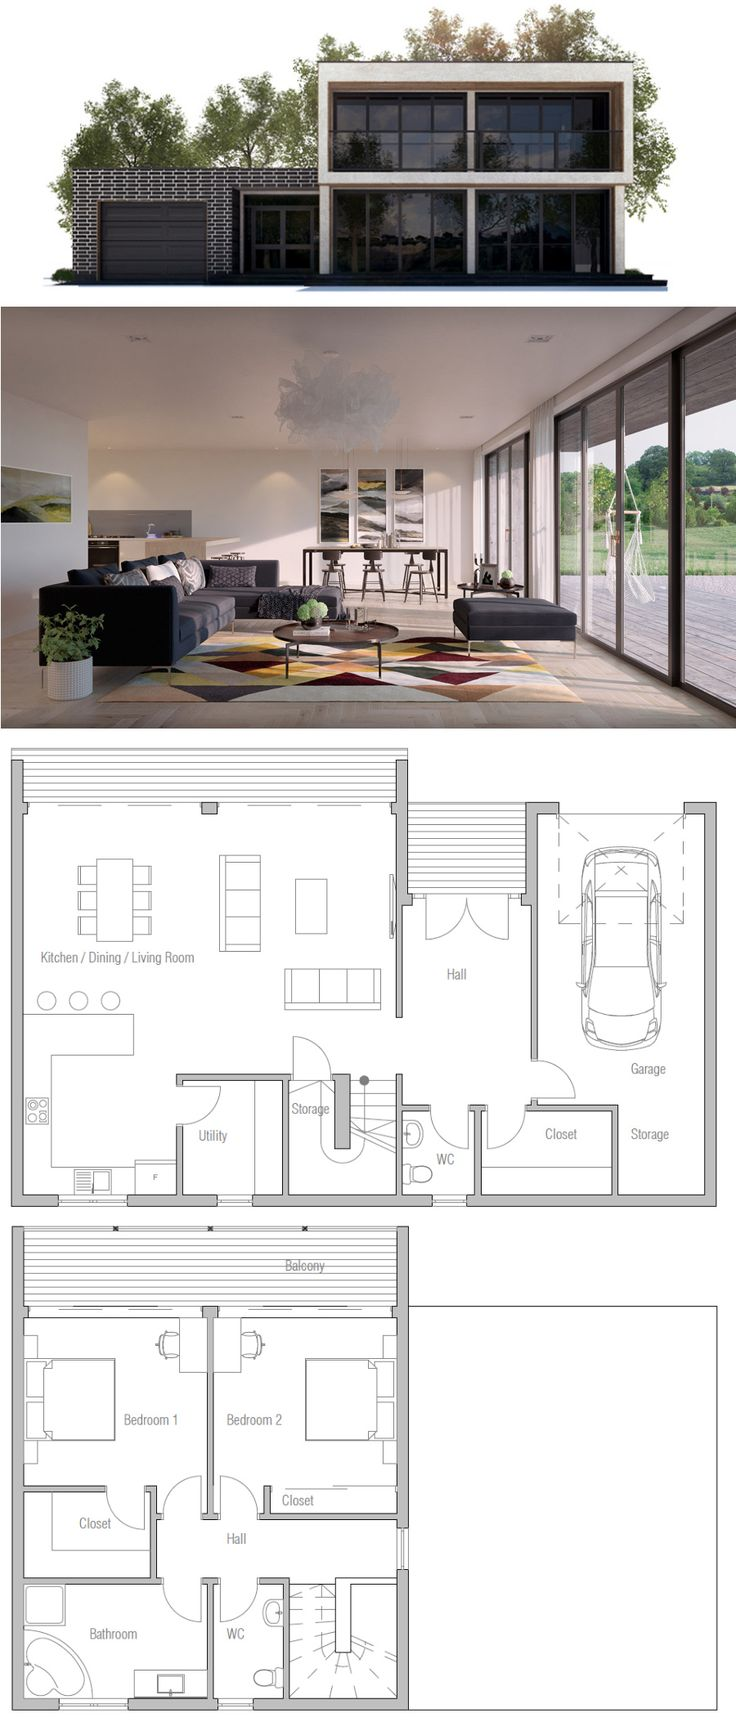 13 best house house floor plans images on pinterest small house plan smart layout